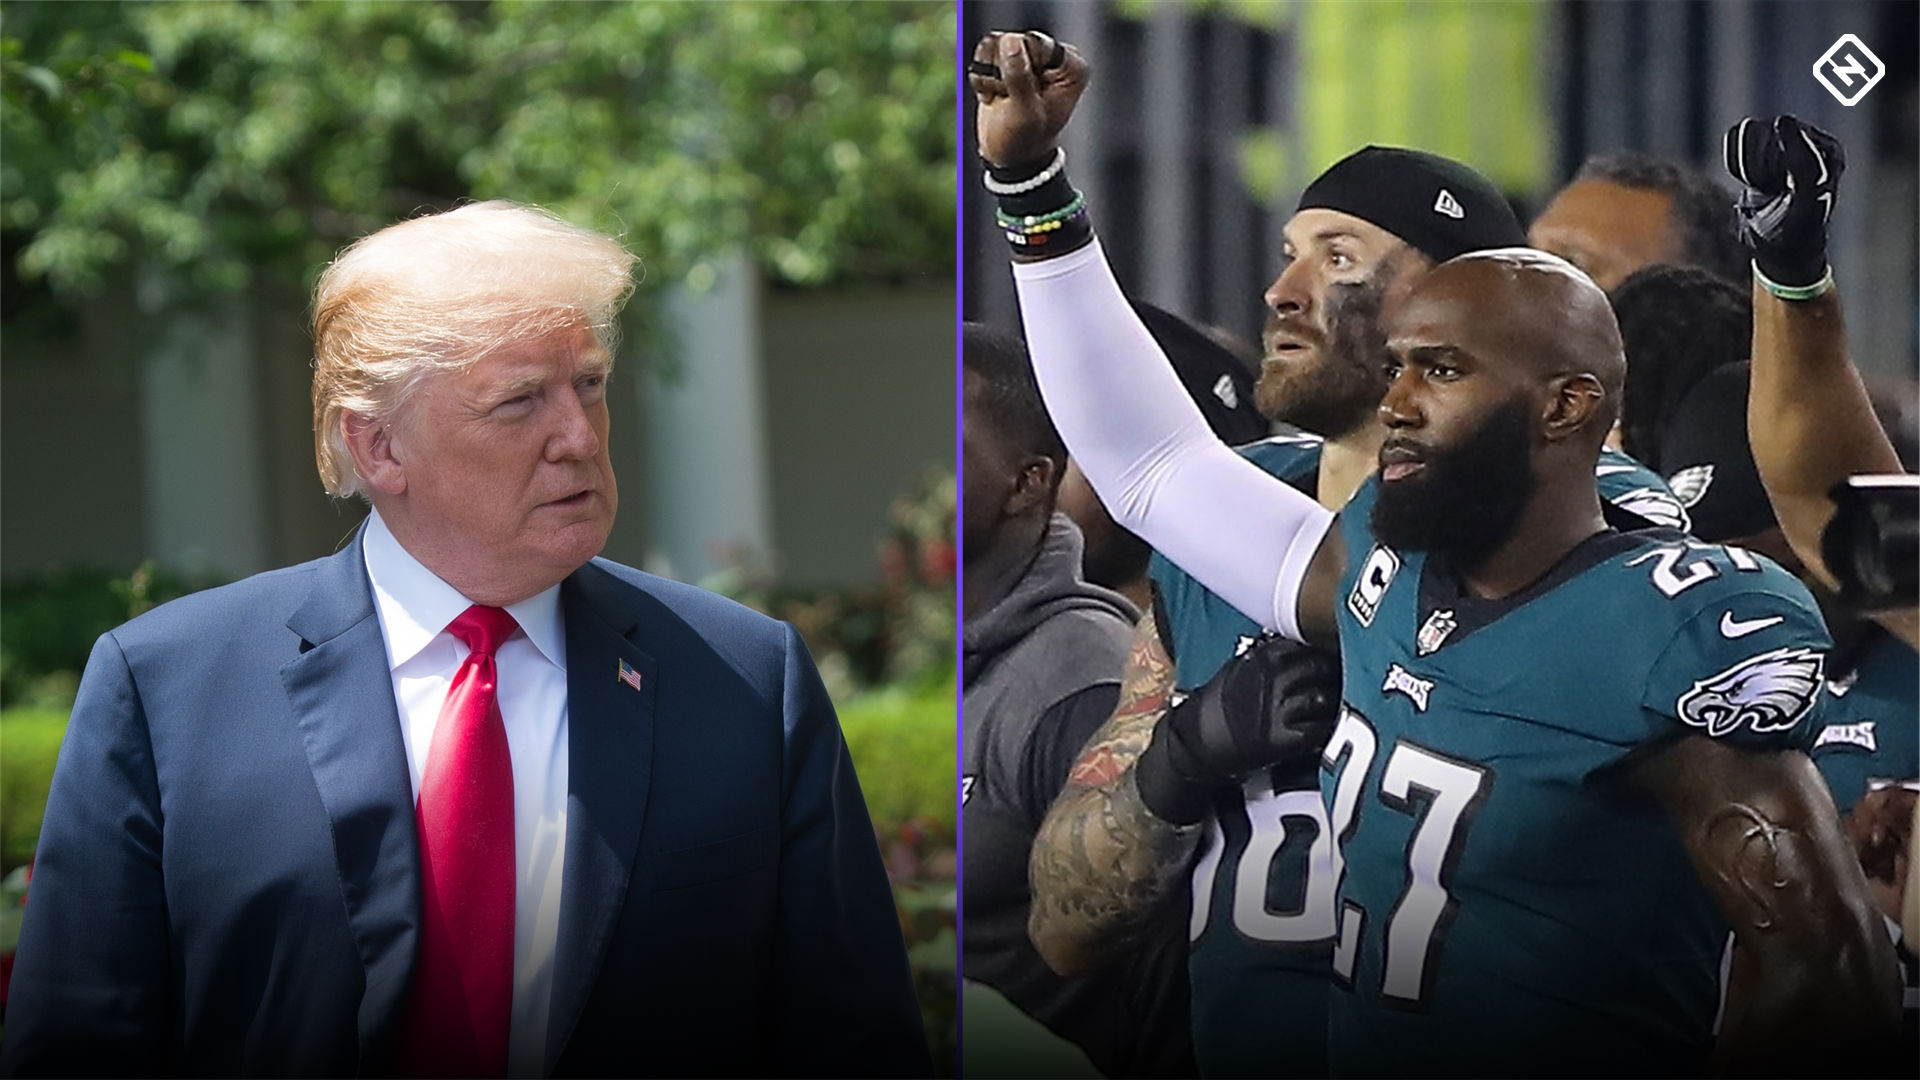 Eagles White House visit: NFL's anthem policy, Trump's words stir the pot